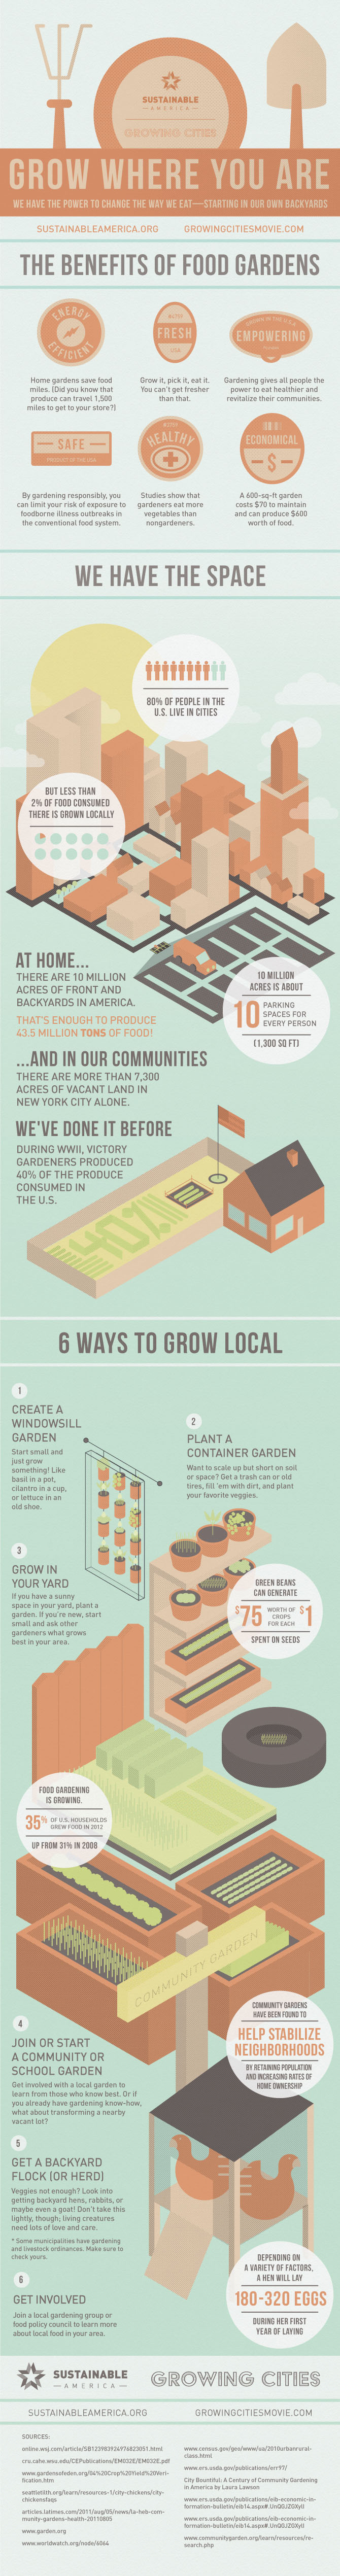 Grow Where You Are Information Graphic